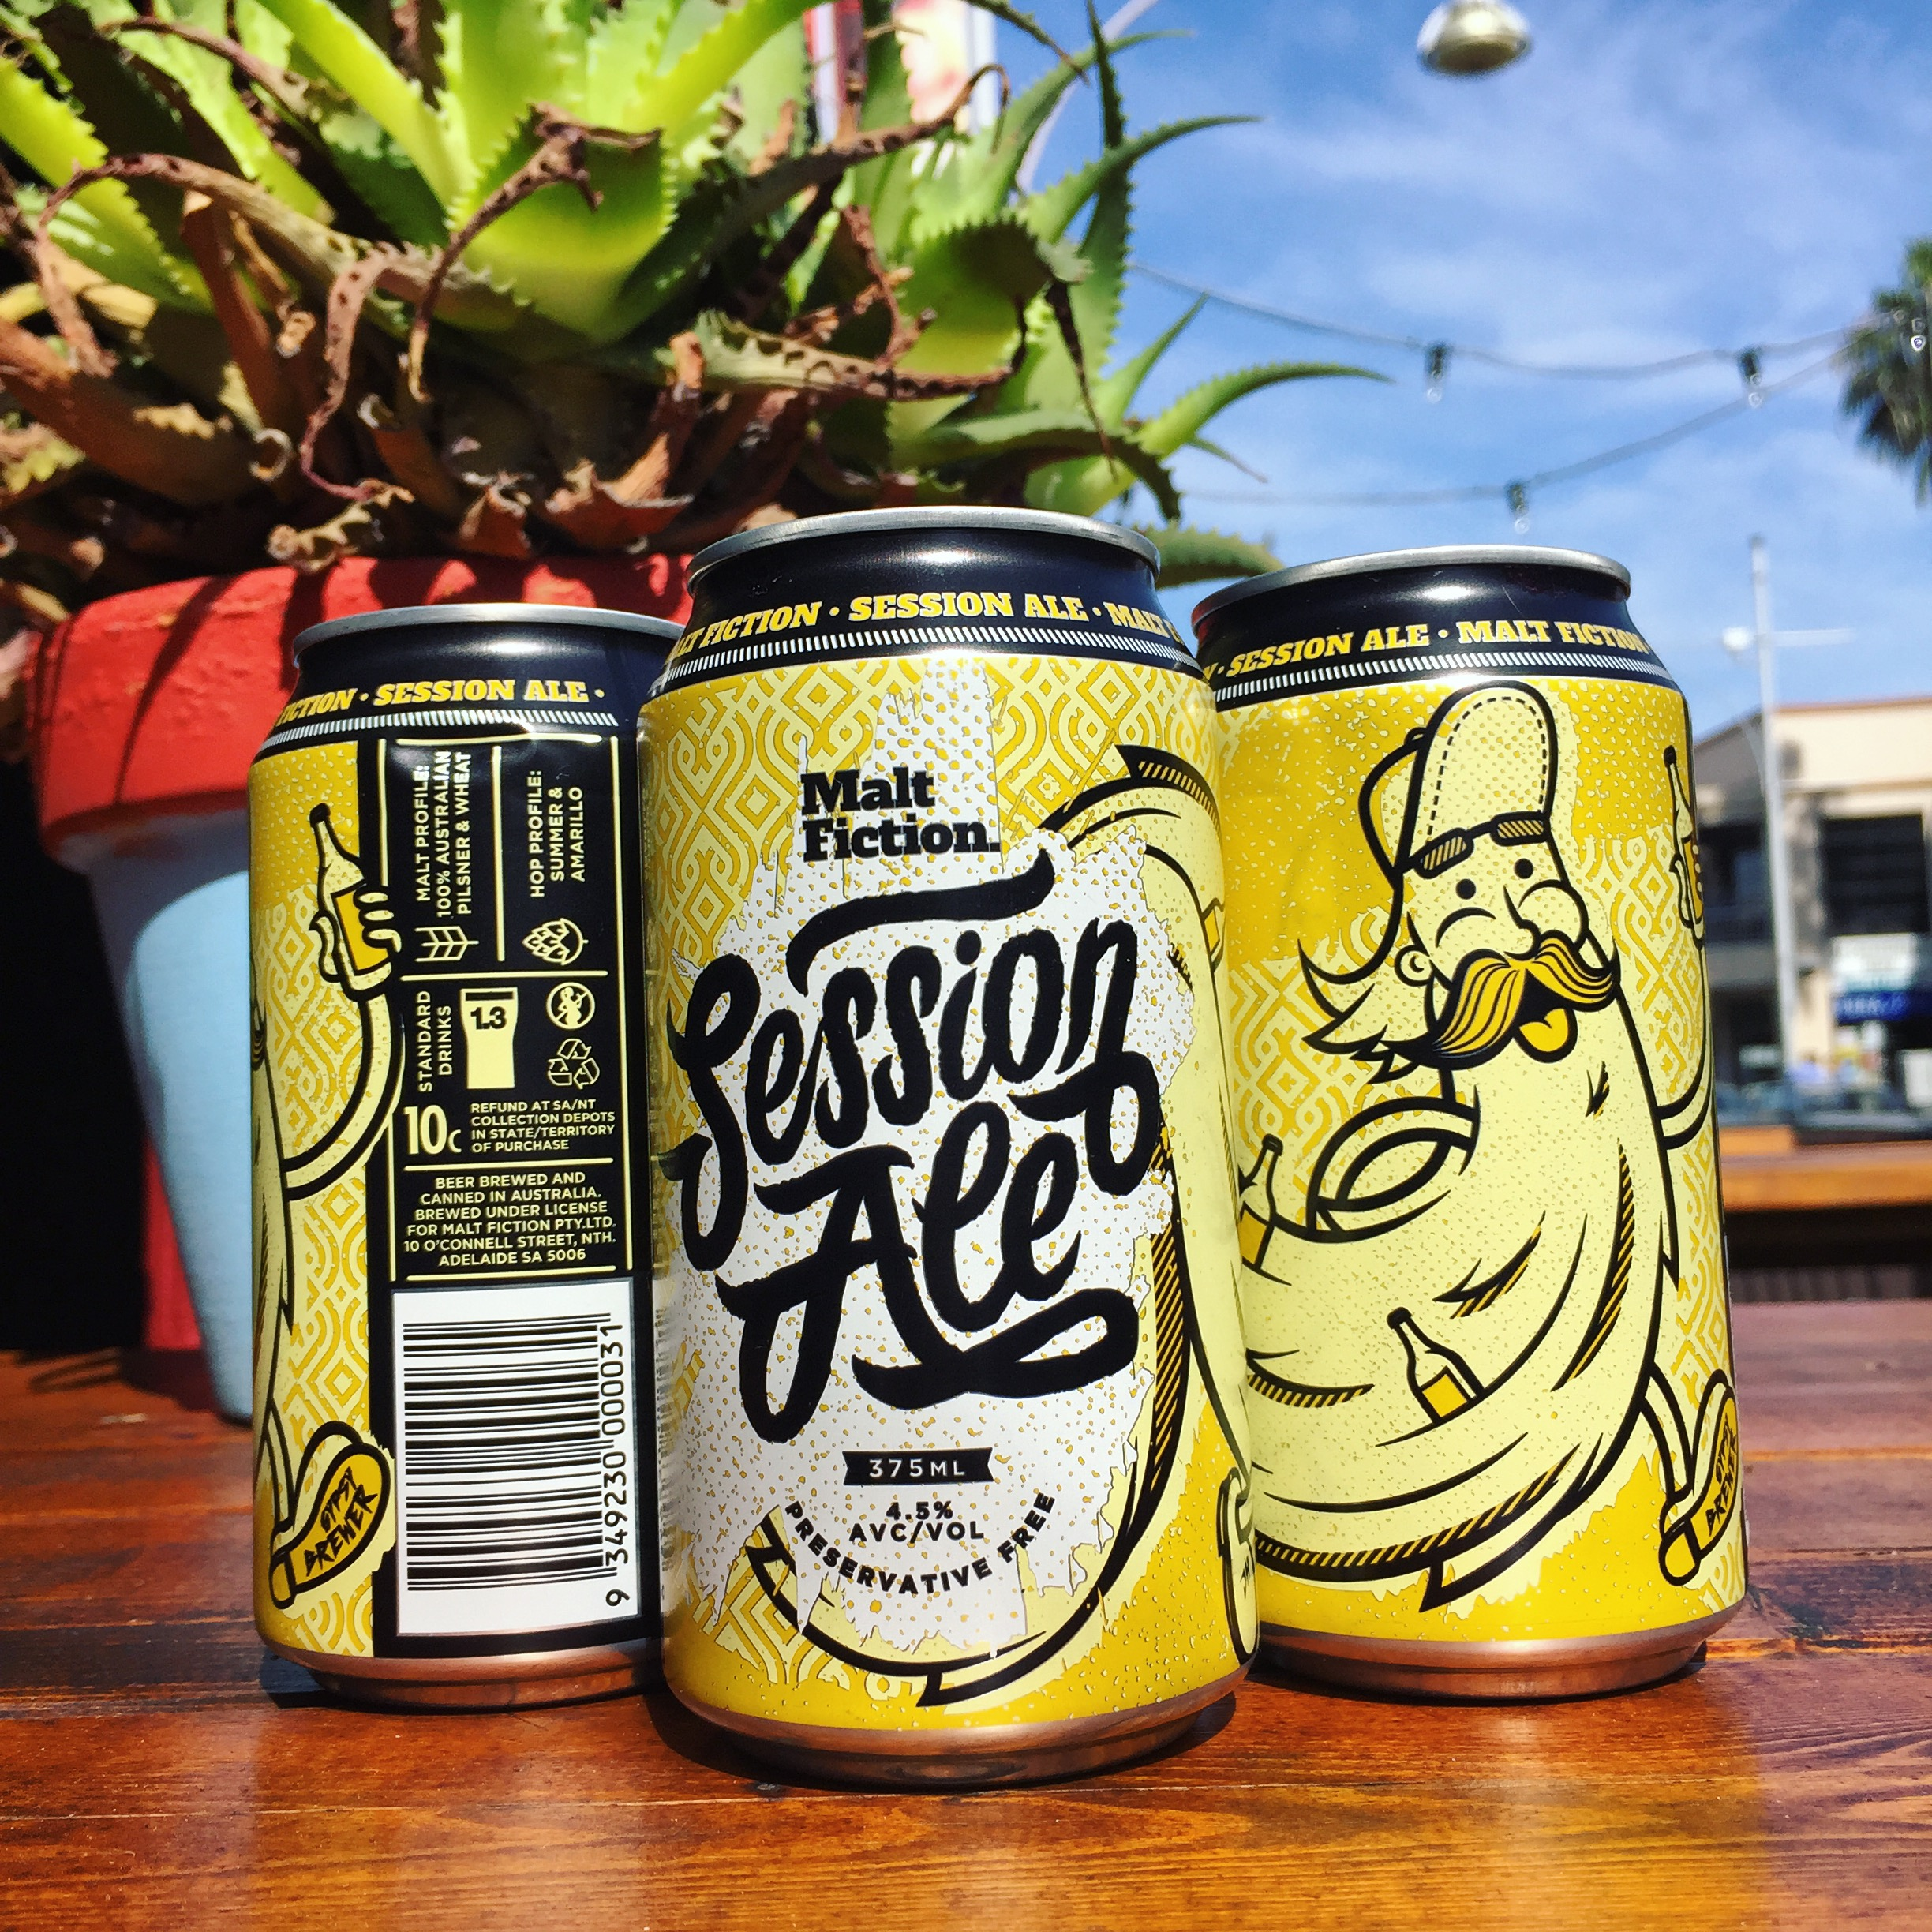 Adelaide Food Blog-Malt Fiction